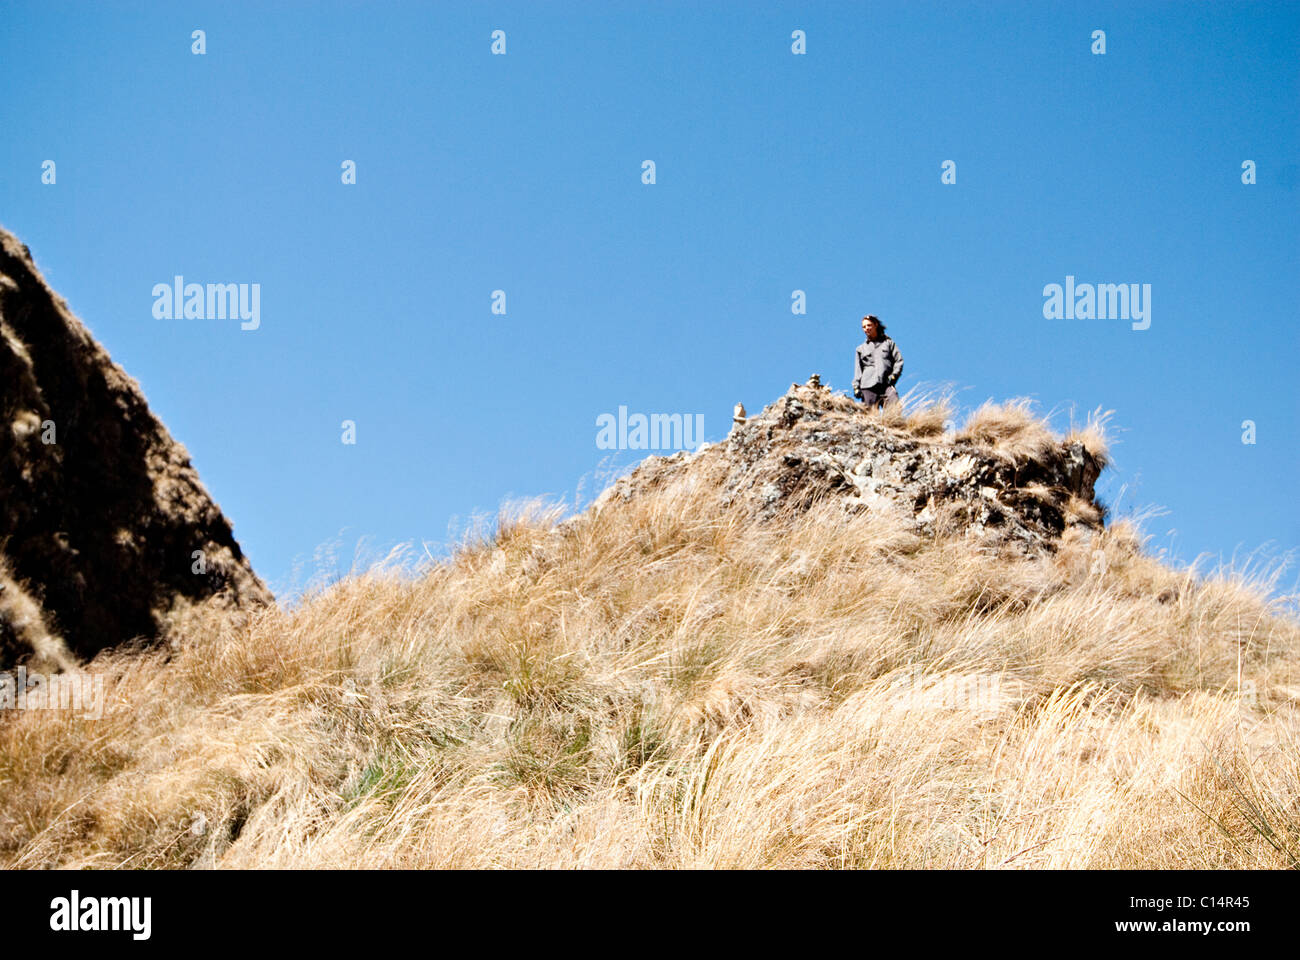 A young man looks into the distance while reflecting on the summit of Dead Woman's Pass, Inca Trail. - Stock Image